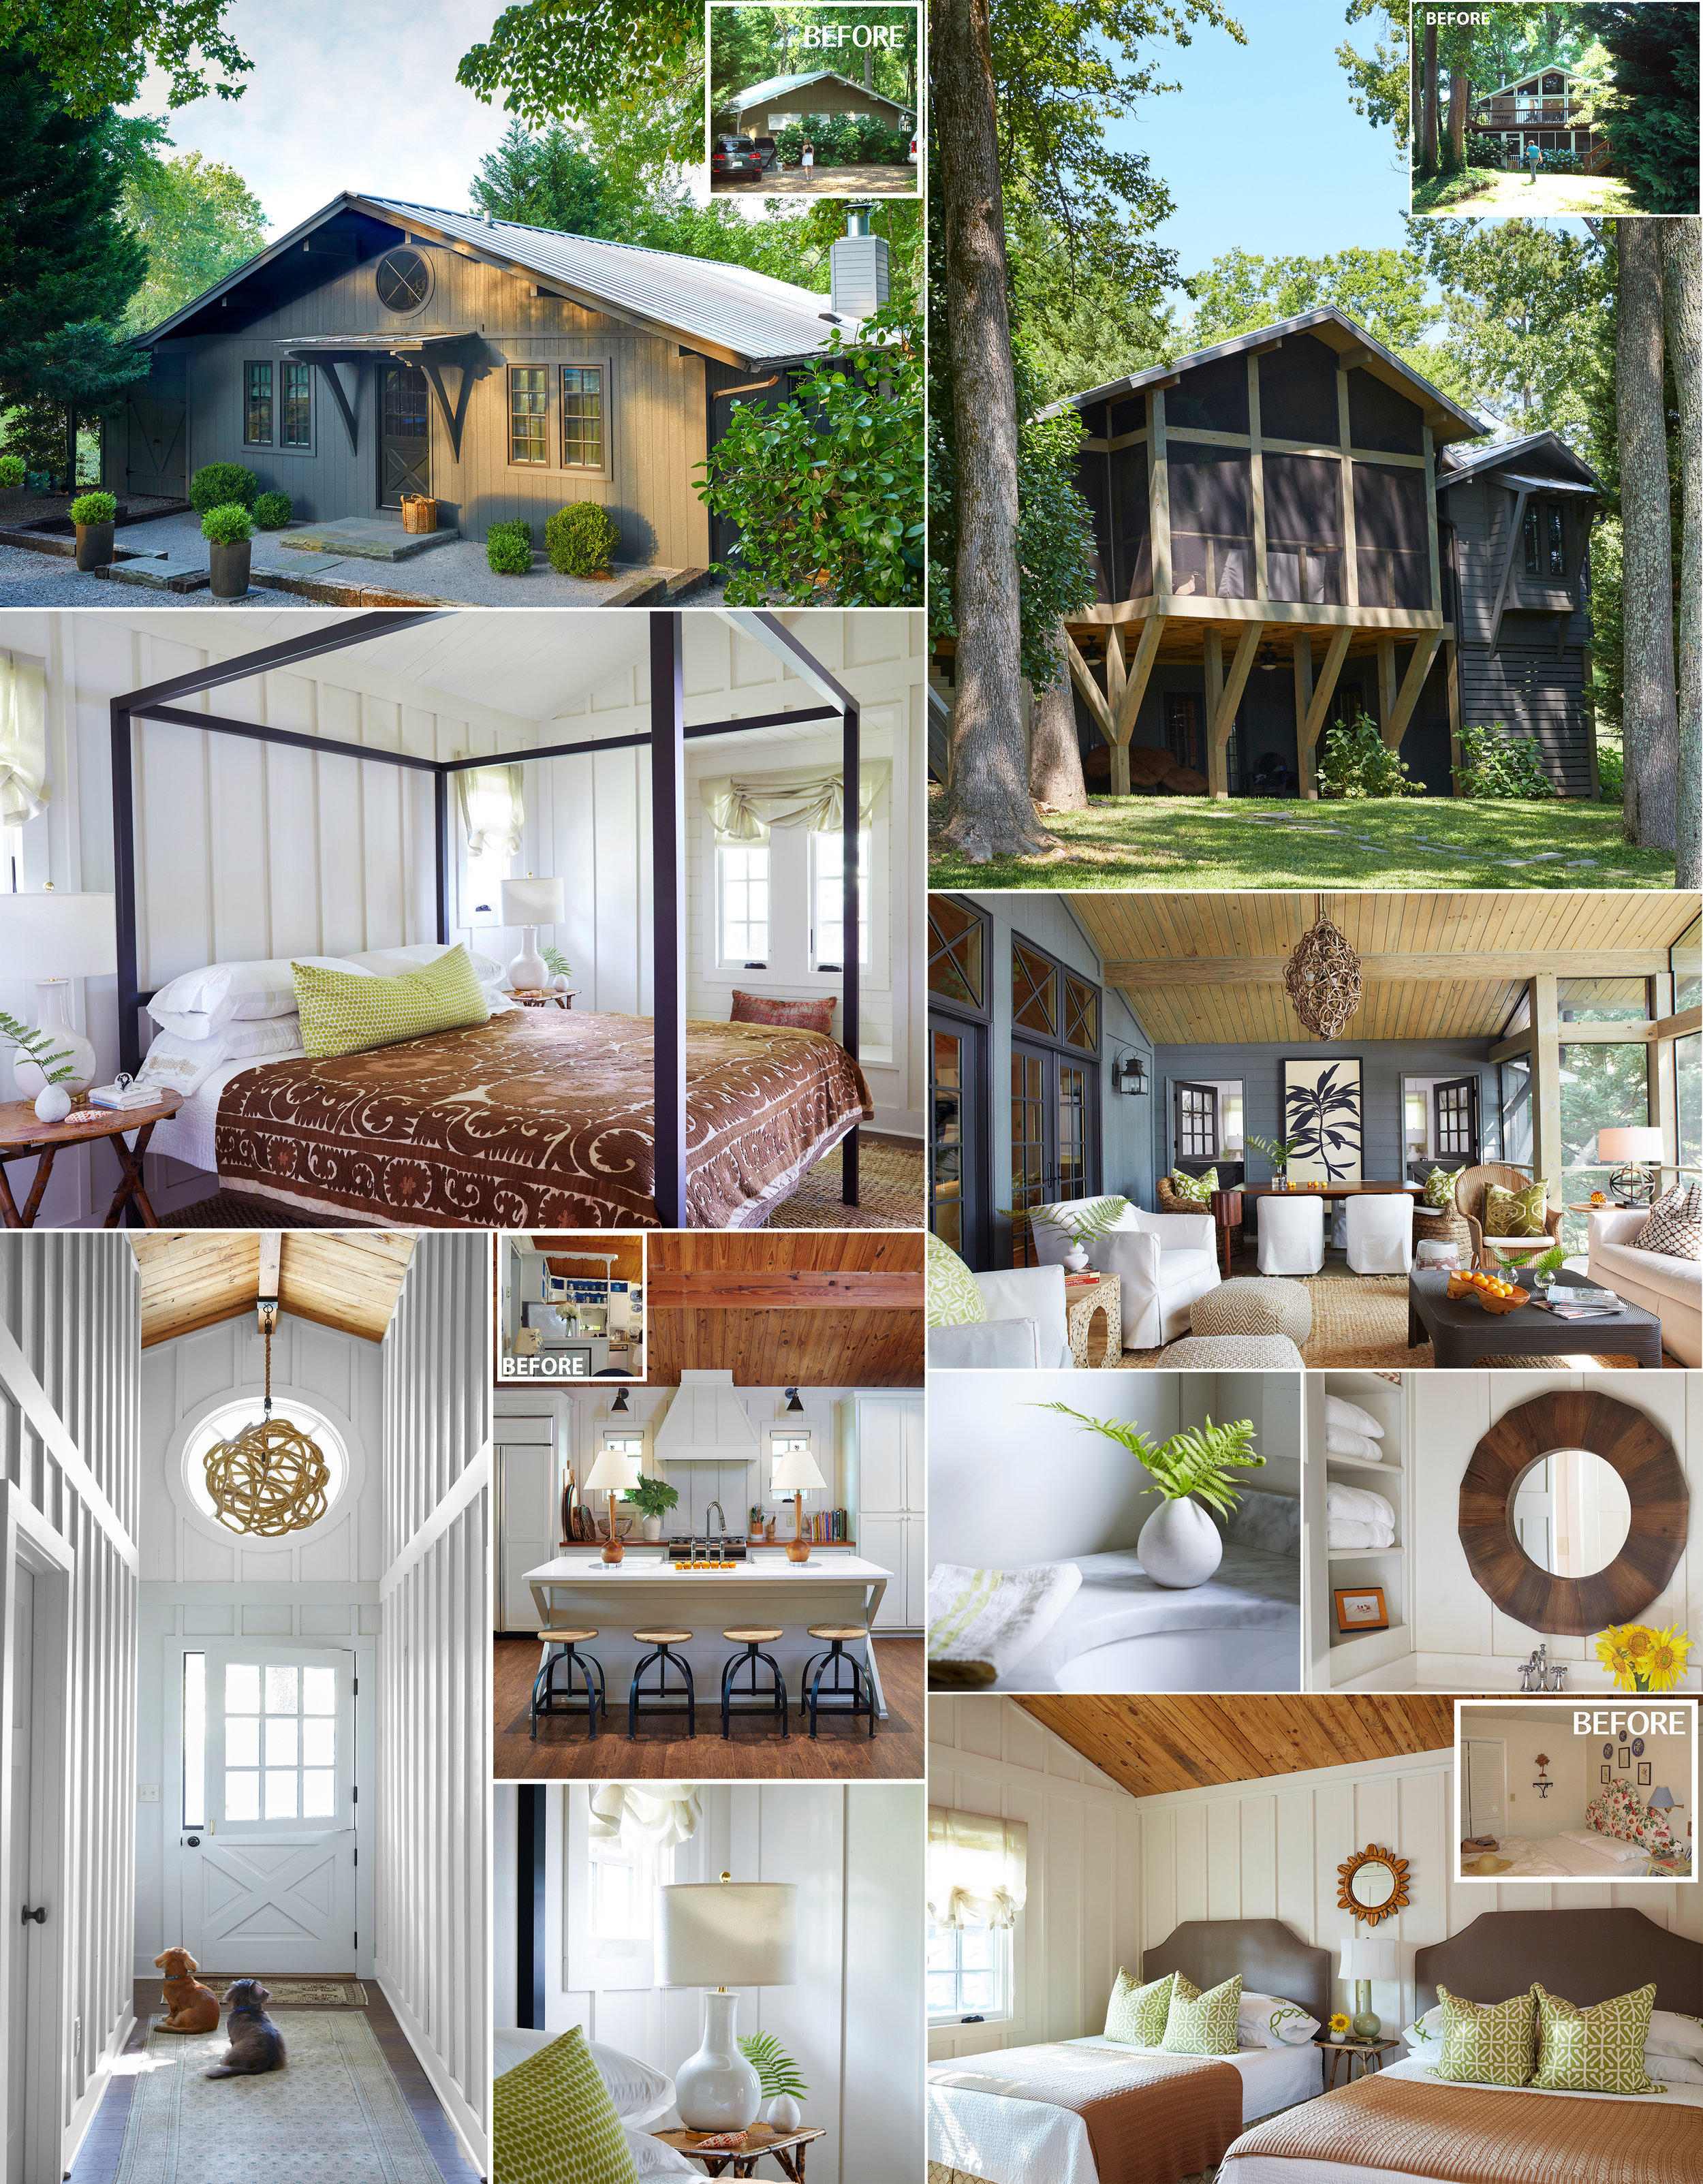 Camp Coleman Collage Renovation and additions Florence, Alabama